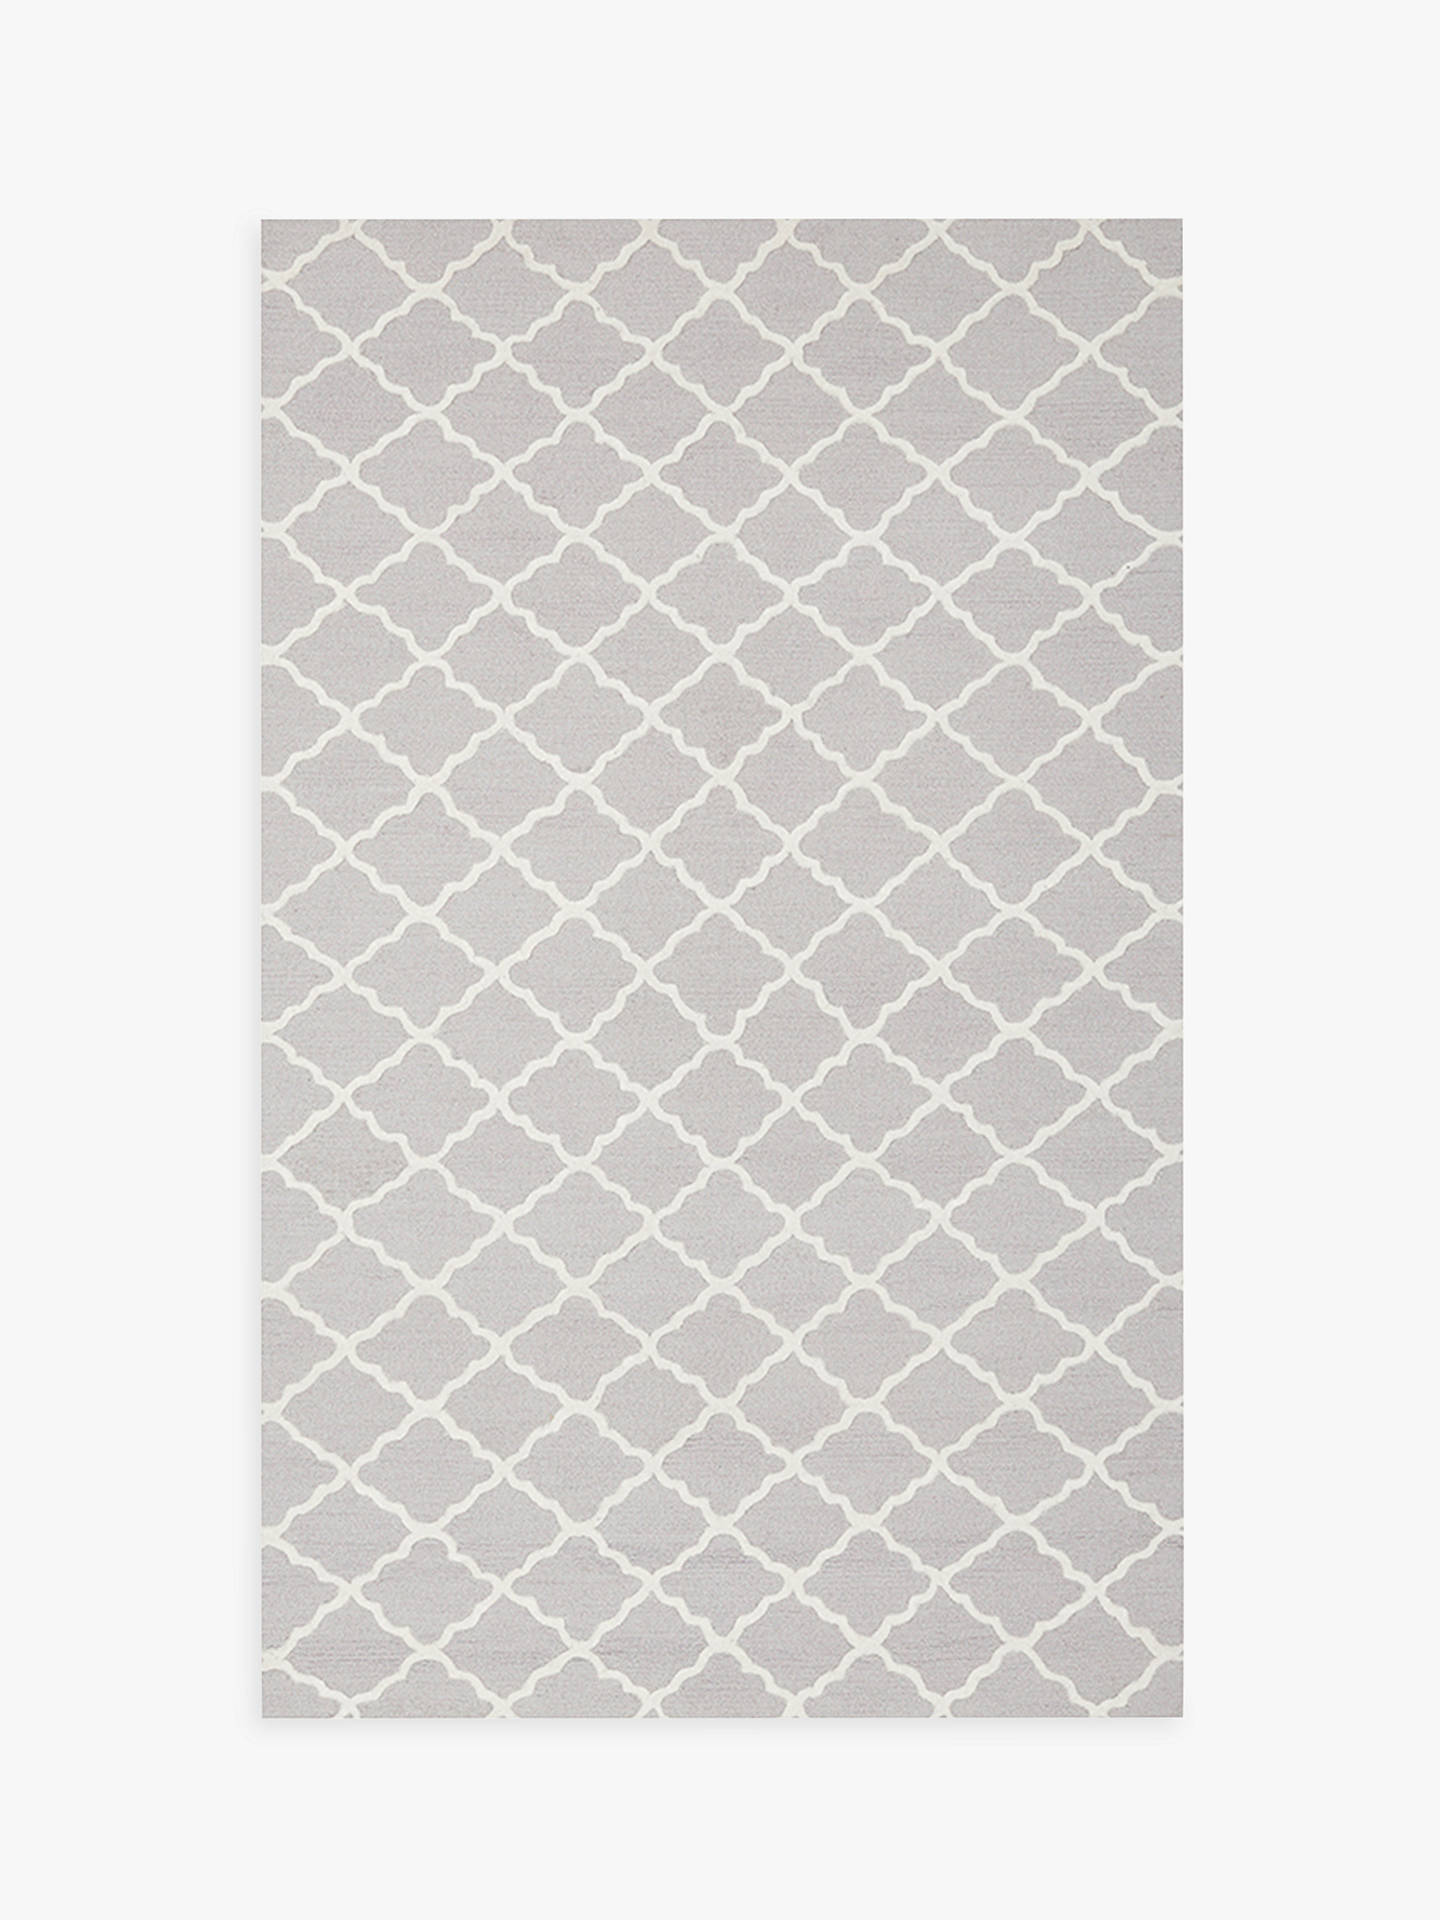 Pottery Barn Kids Addison Rug Grey At John Lewis Amp Partners